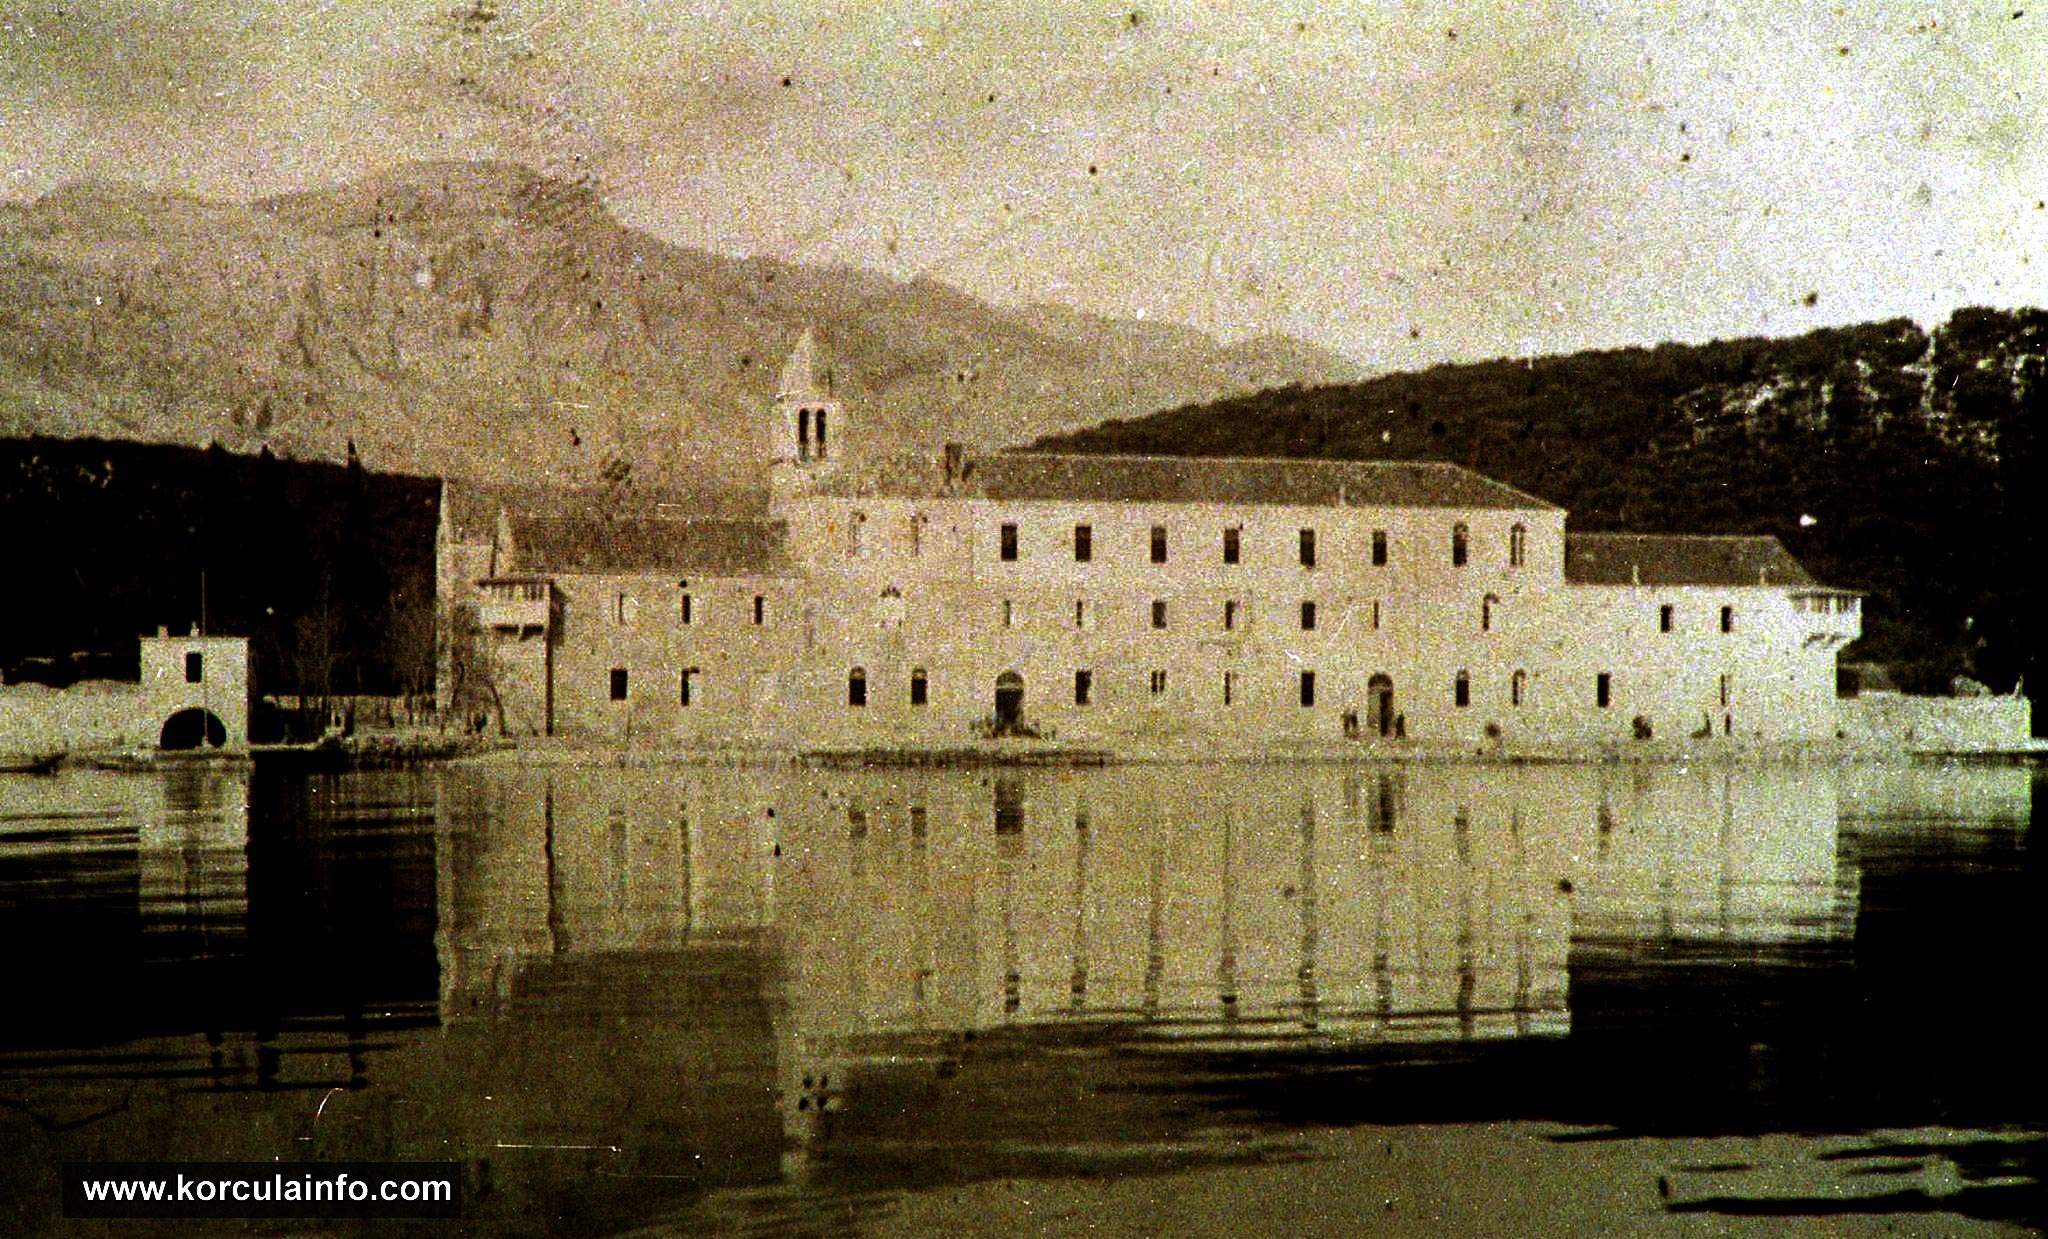 South Facade of Badija Monastery in 1920s - the top floor of the Monastery is already finished